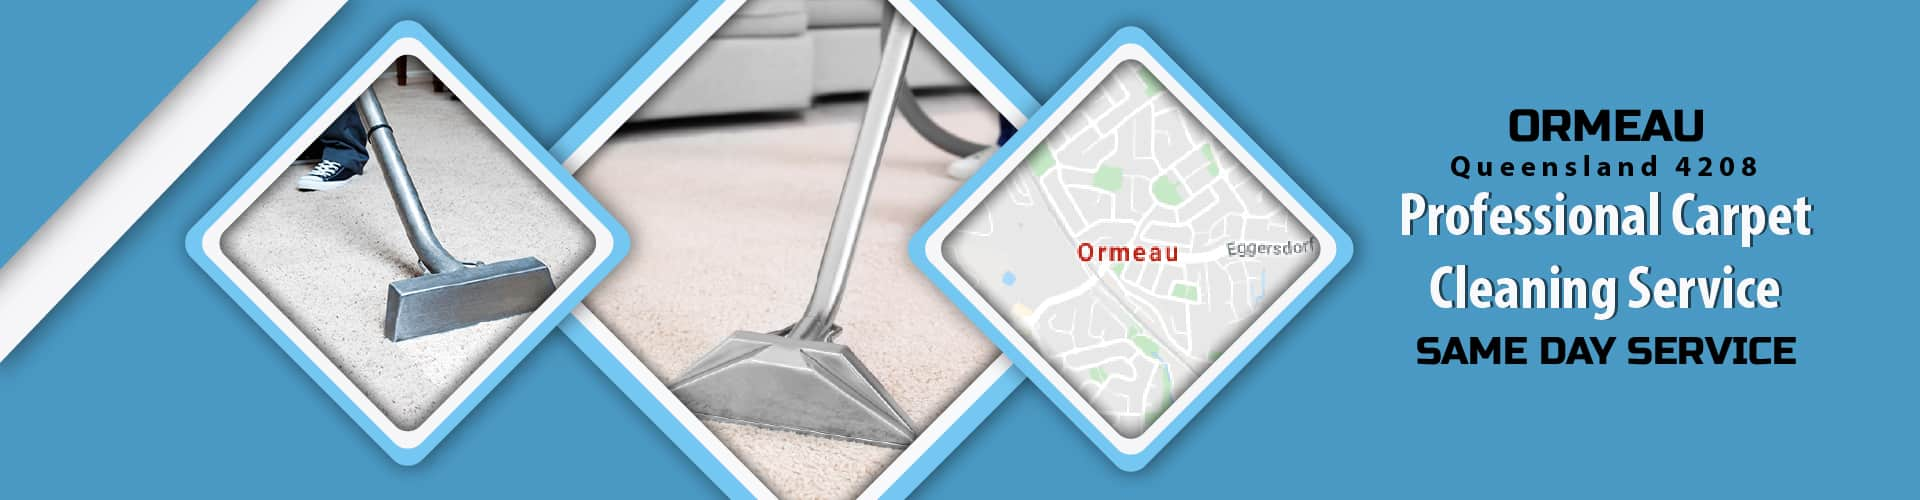 Carpet Cleaning Ormeau